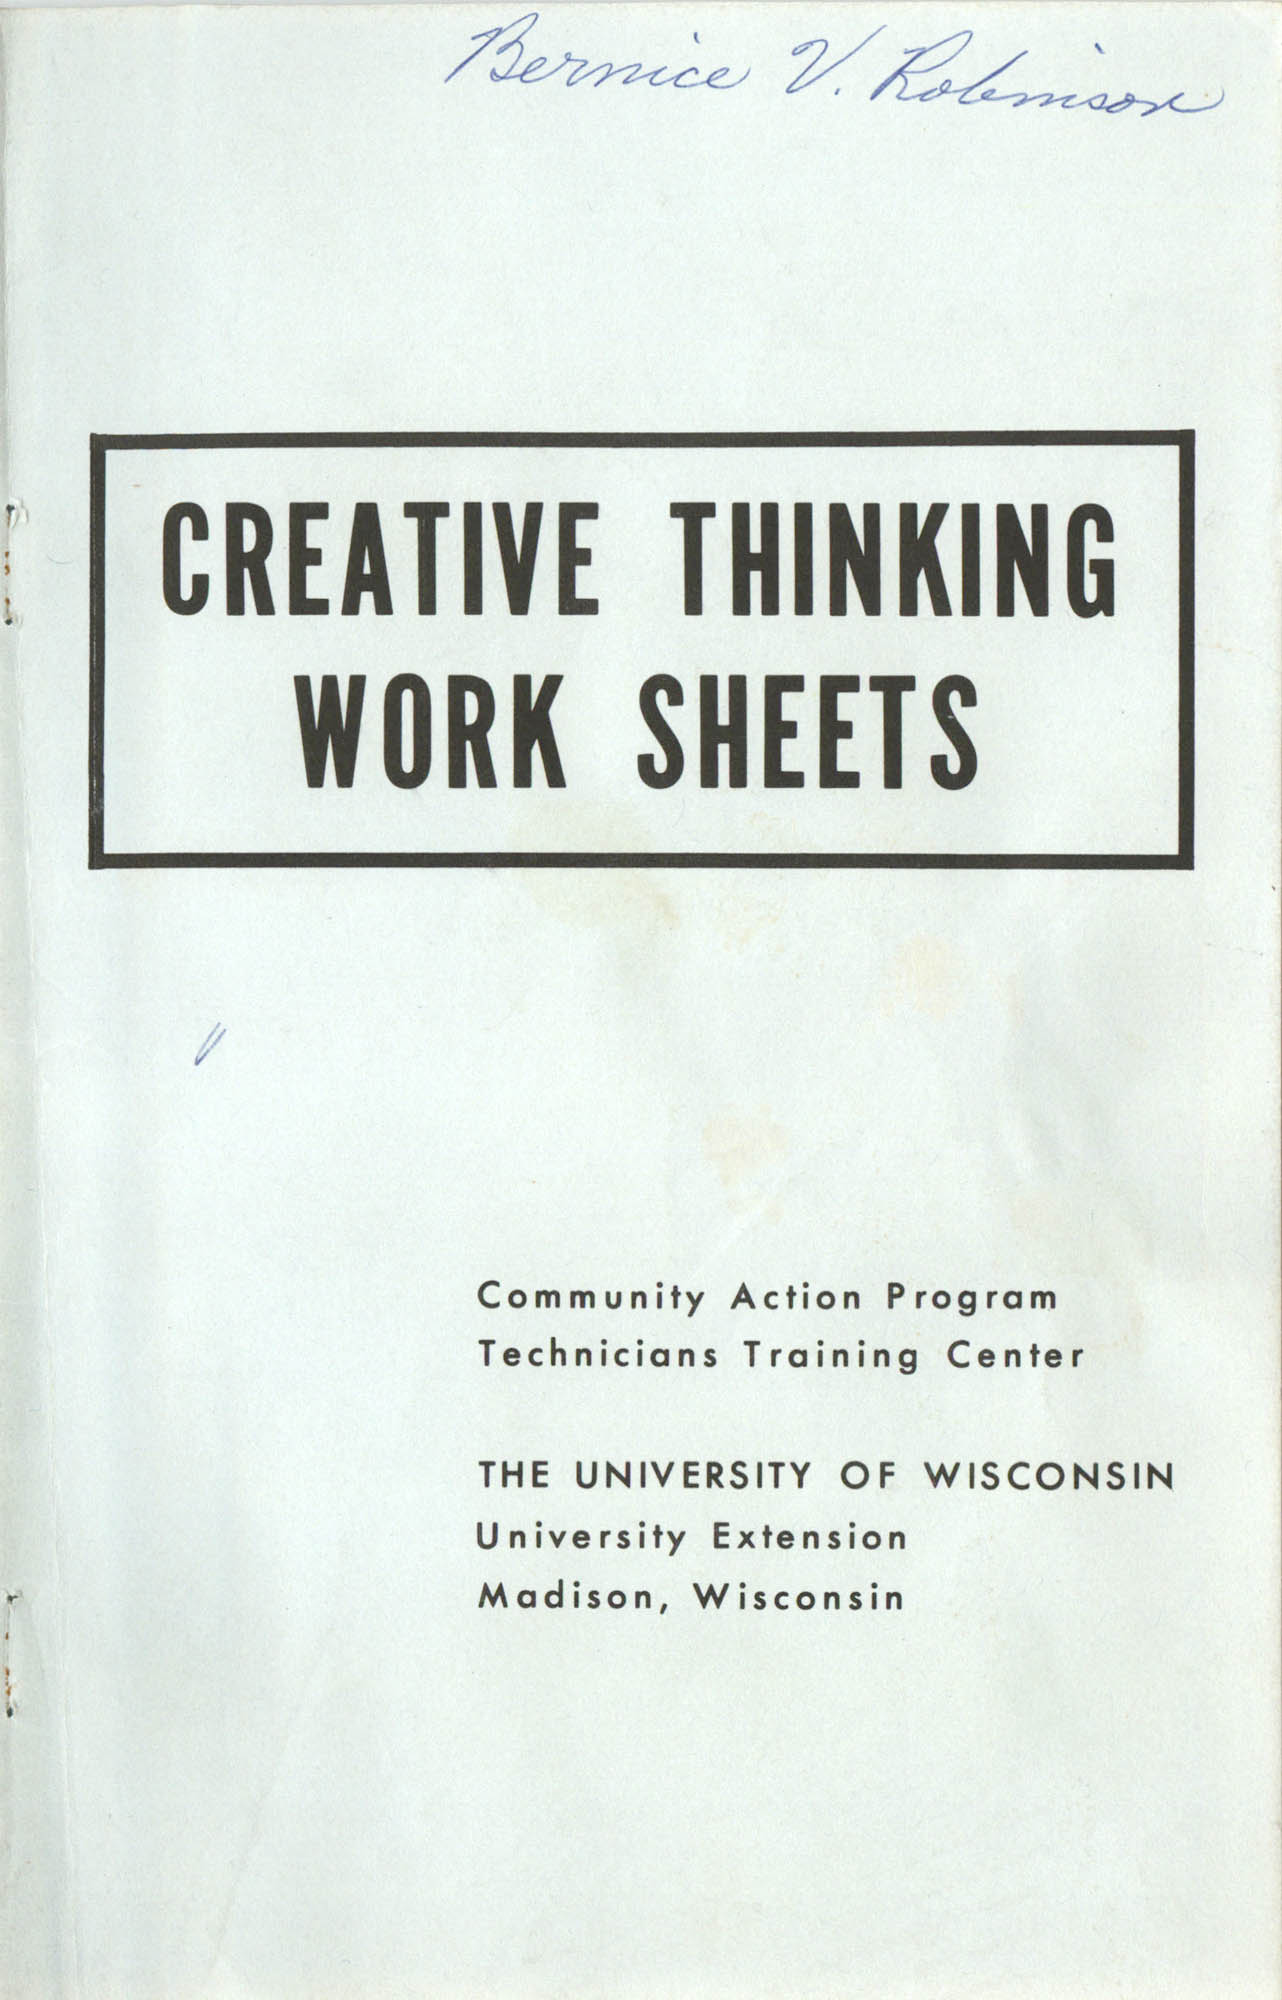 Creative Thinking Work Sheets